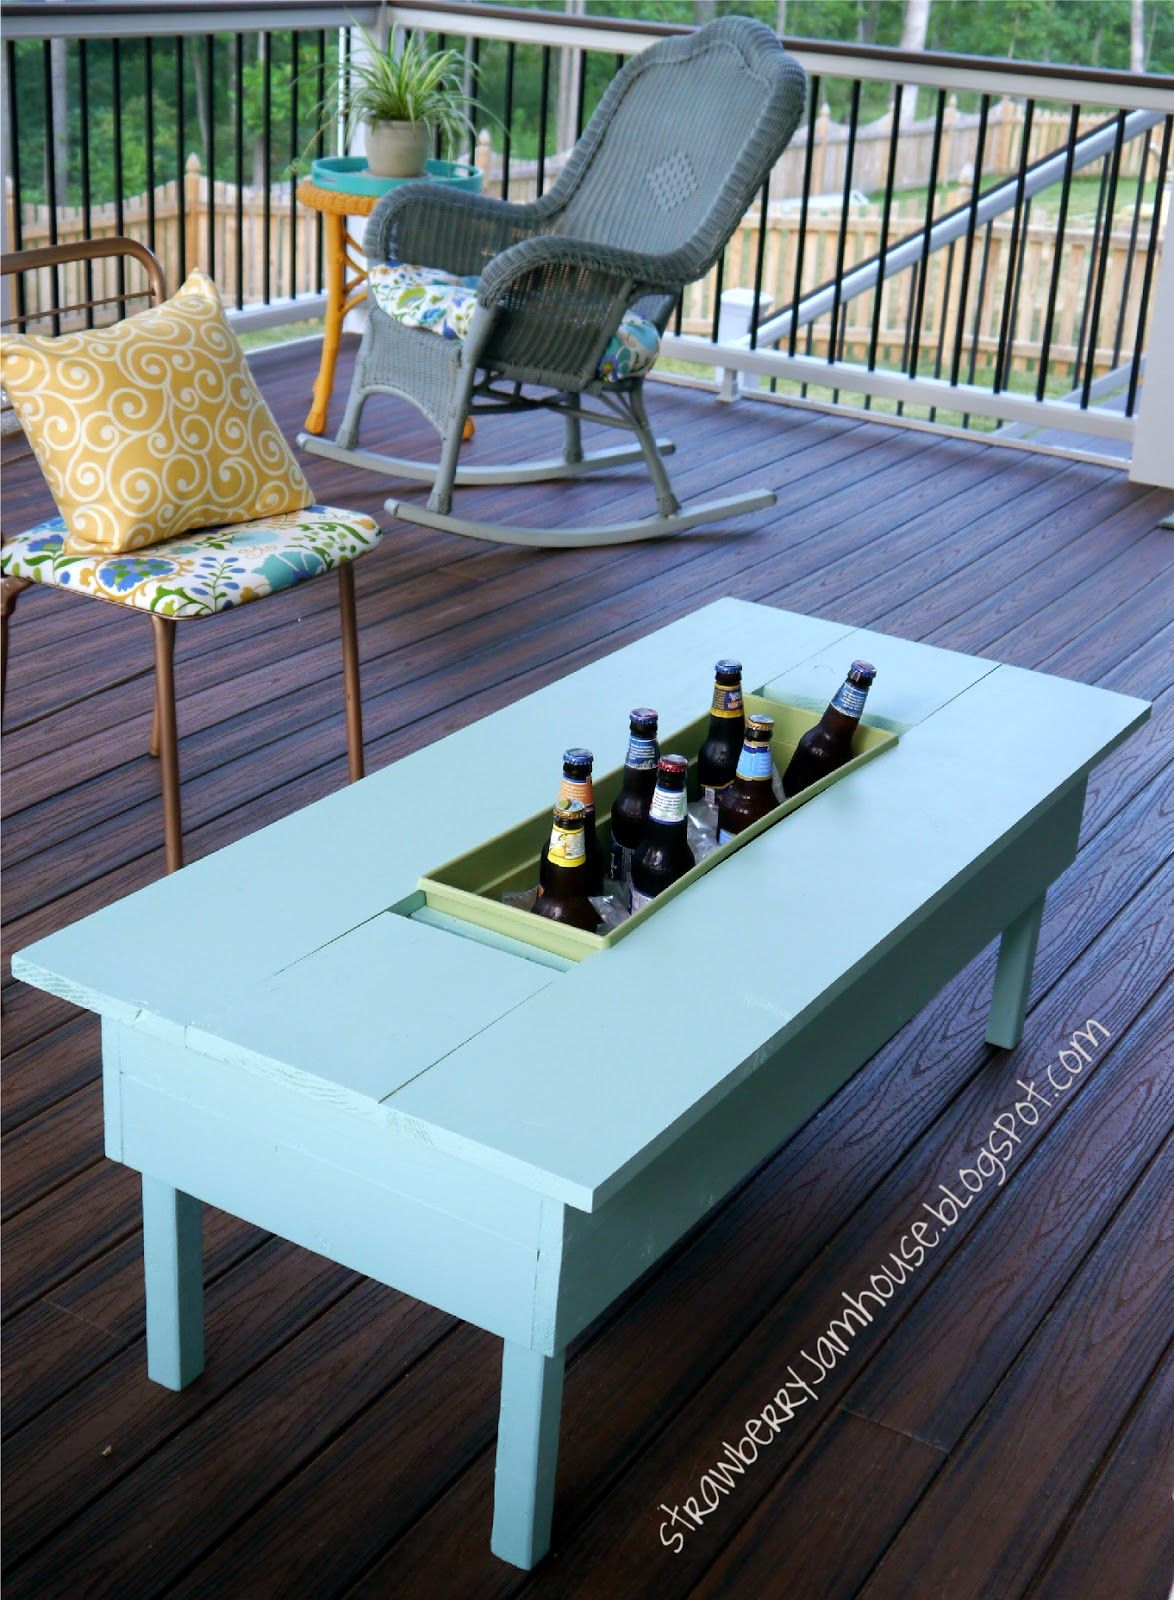 Small coffee table with ice cooler